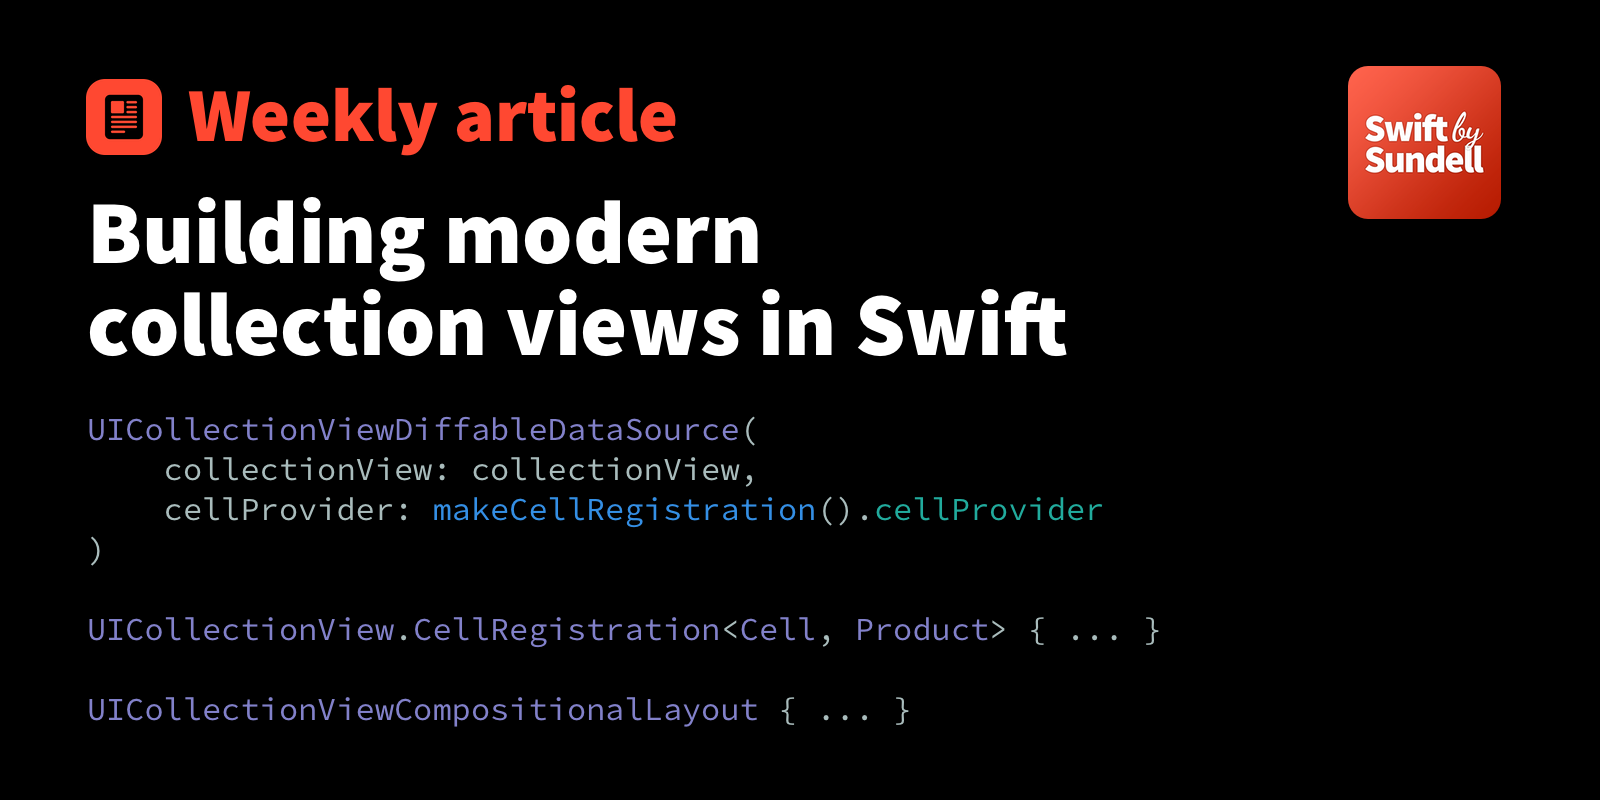 Building modern collection views in Swift